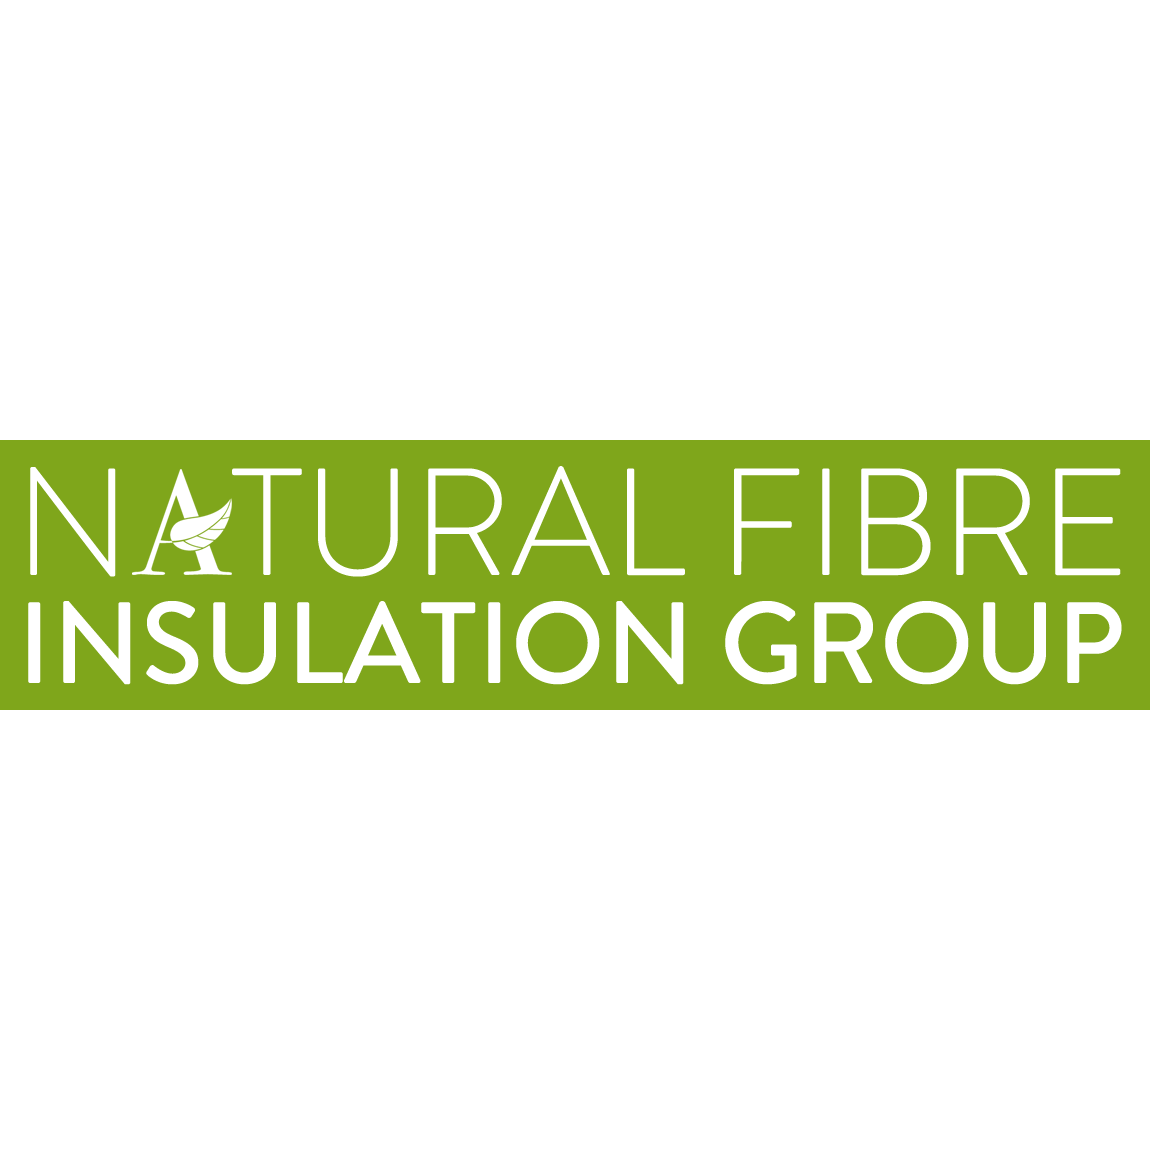 http://asbp.org.uk/briefing-paper/health-and-wellbeing-benefits-of-natural-fibre-insulation-products-and-systems